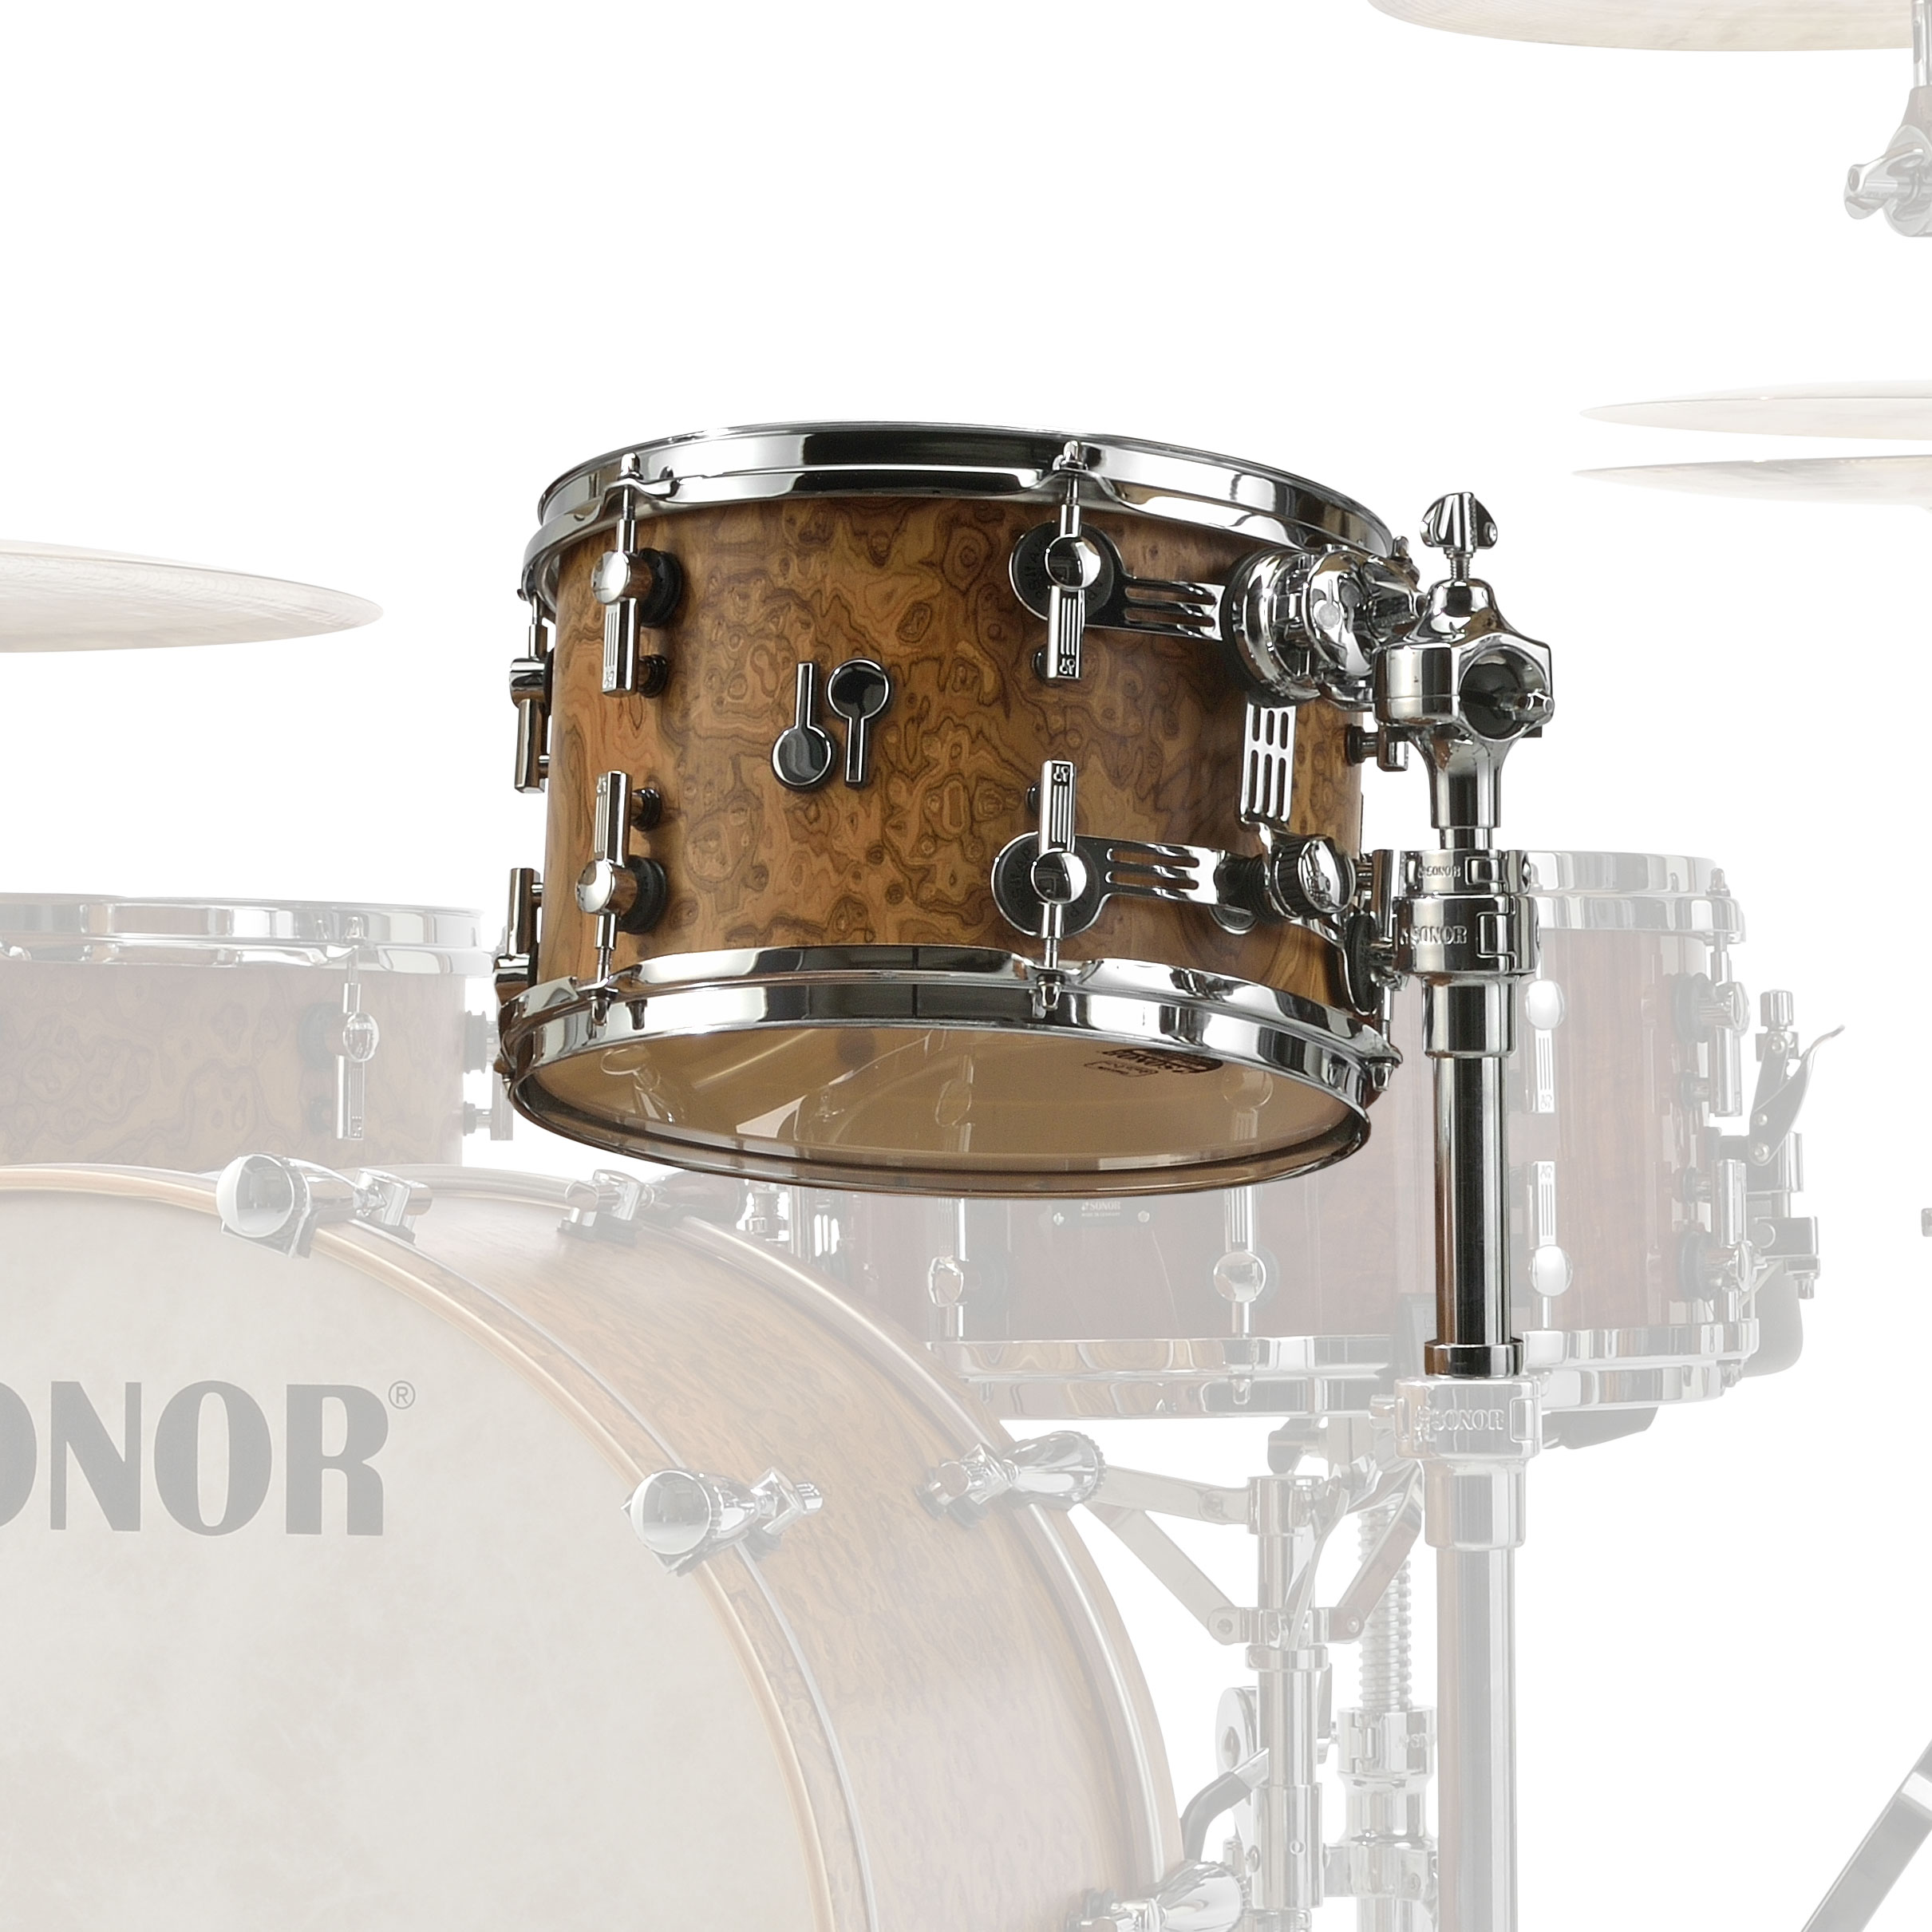 "Sonor 13"" (Diameter) x 9"" (Deep) SQ2 Vintage Maple Tom"